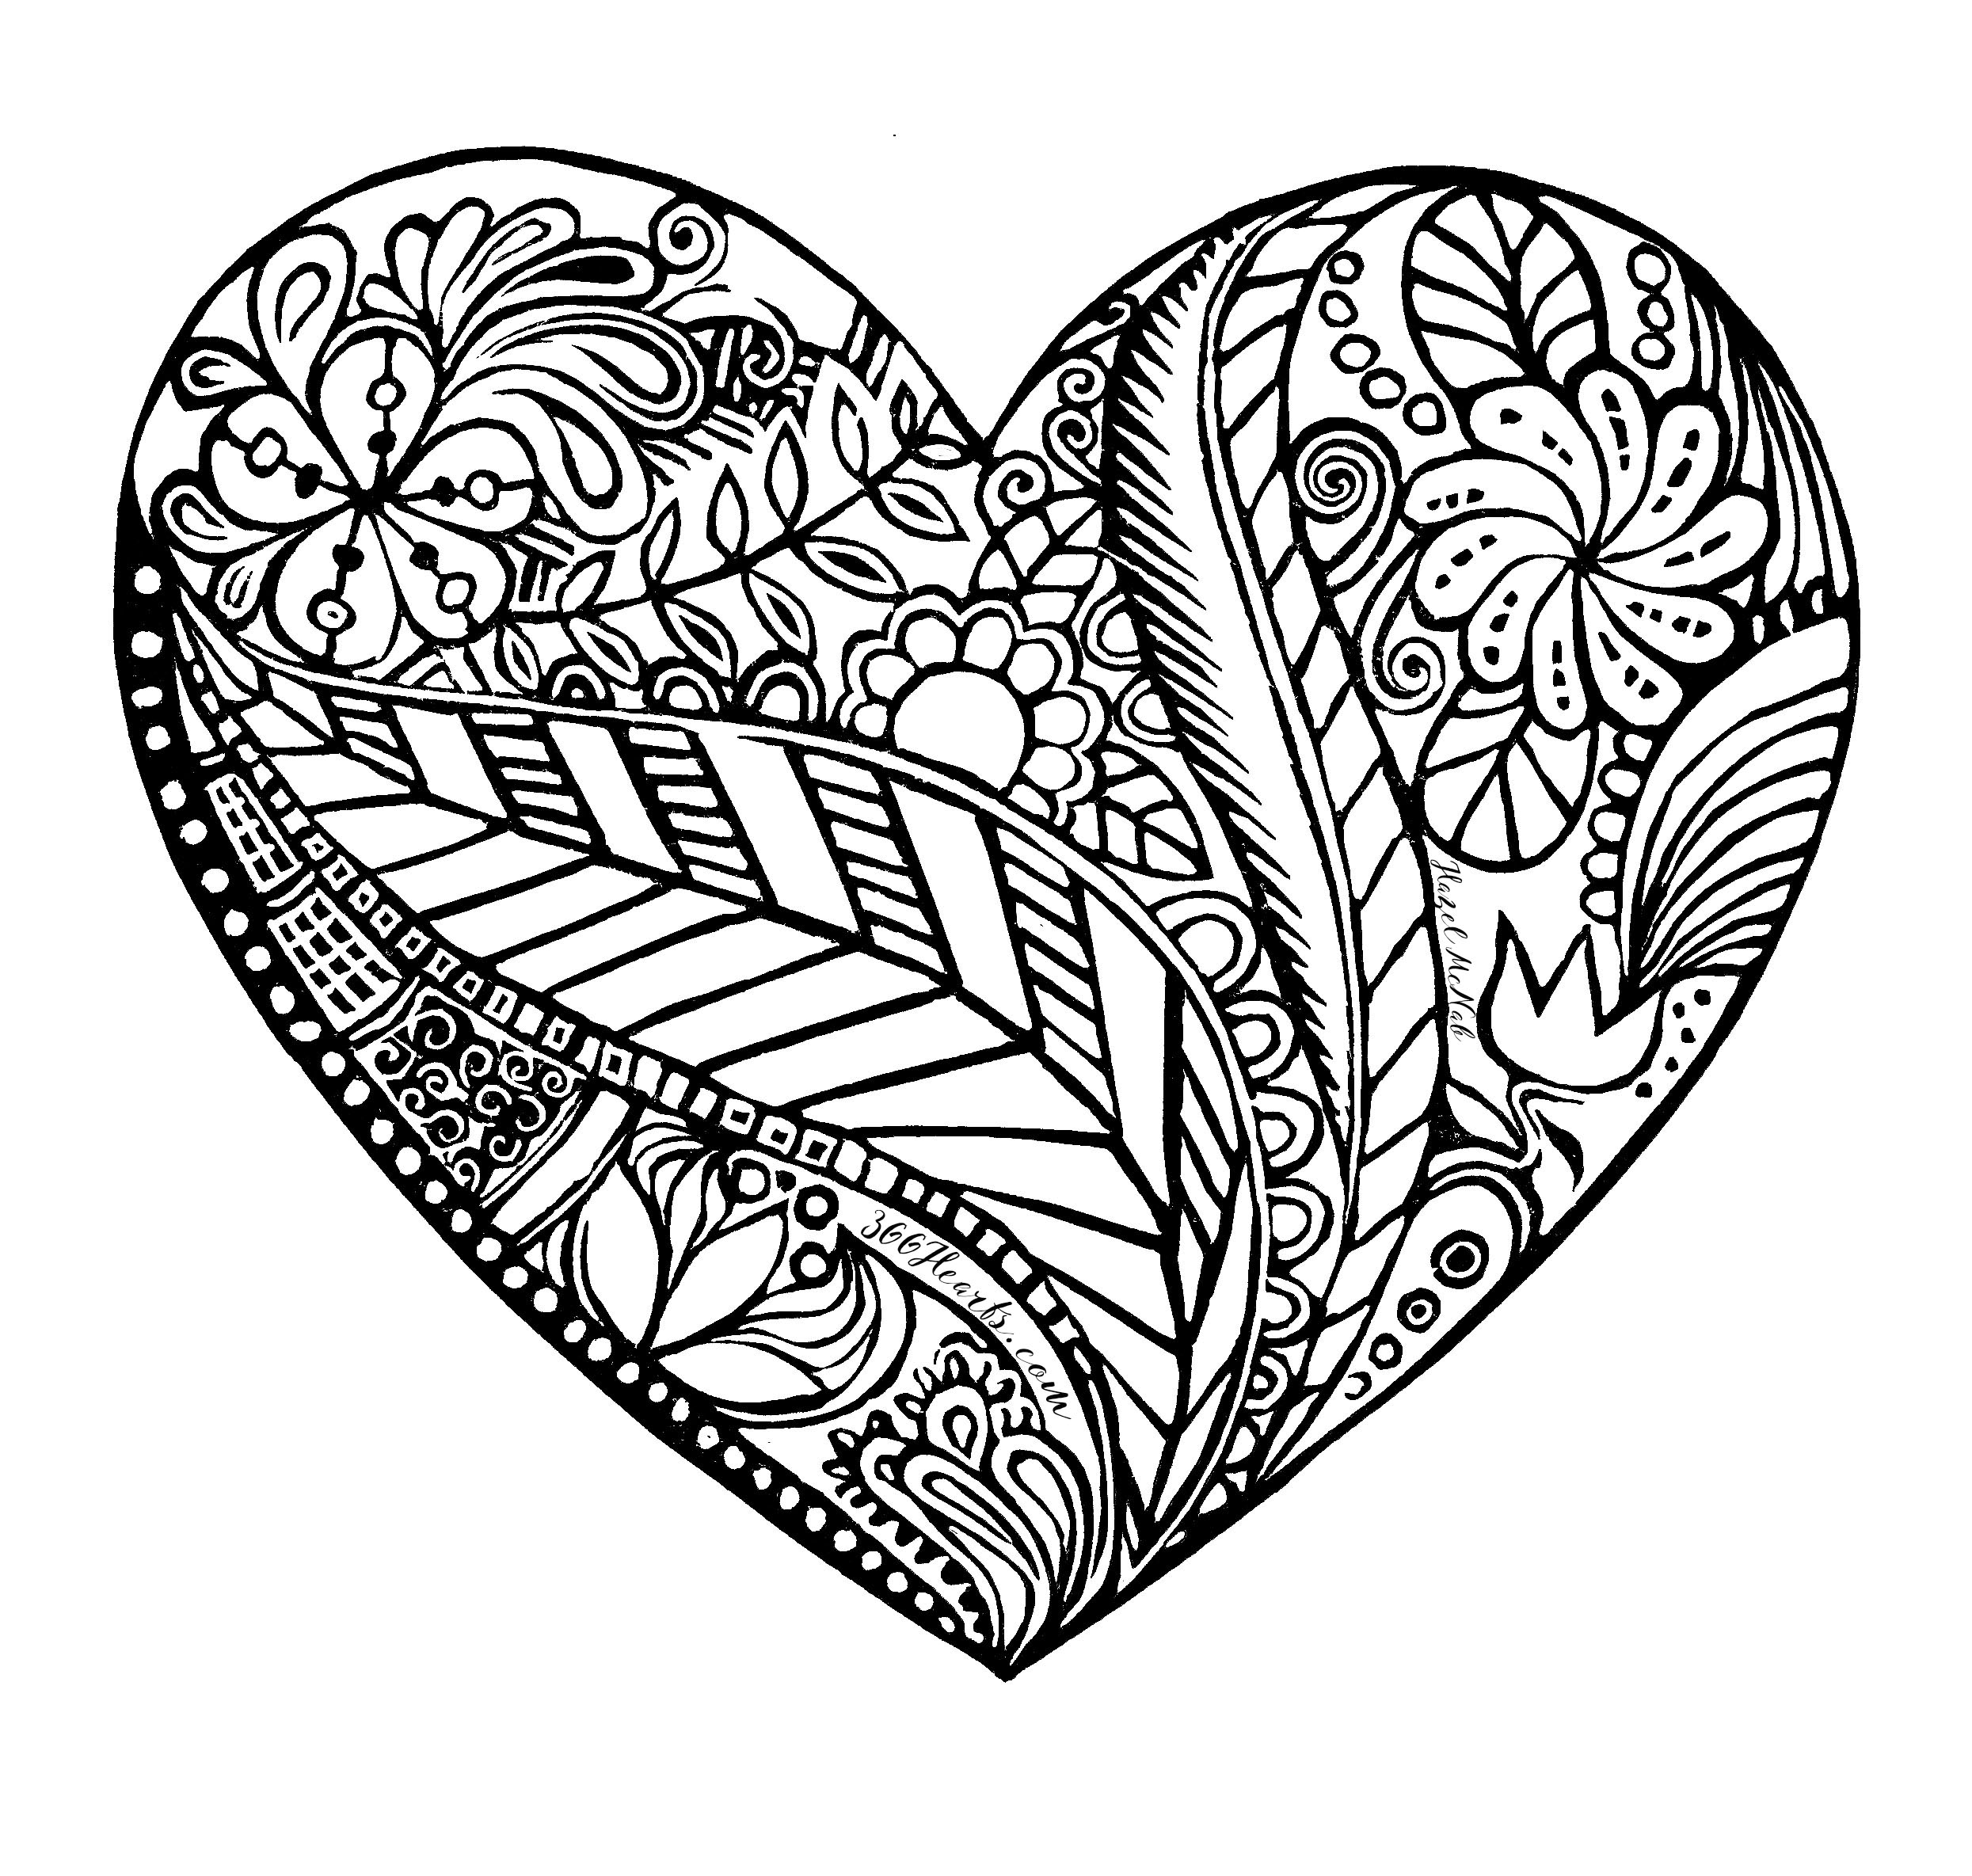 printable hearts coloring pages free printable heart coloring page ausdruckbare hearts pages printable coloring